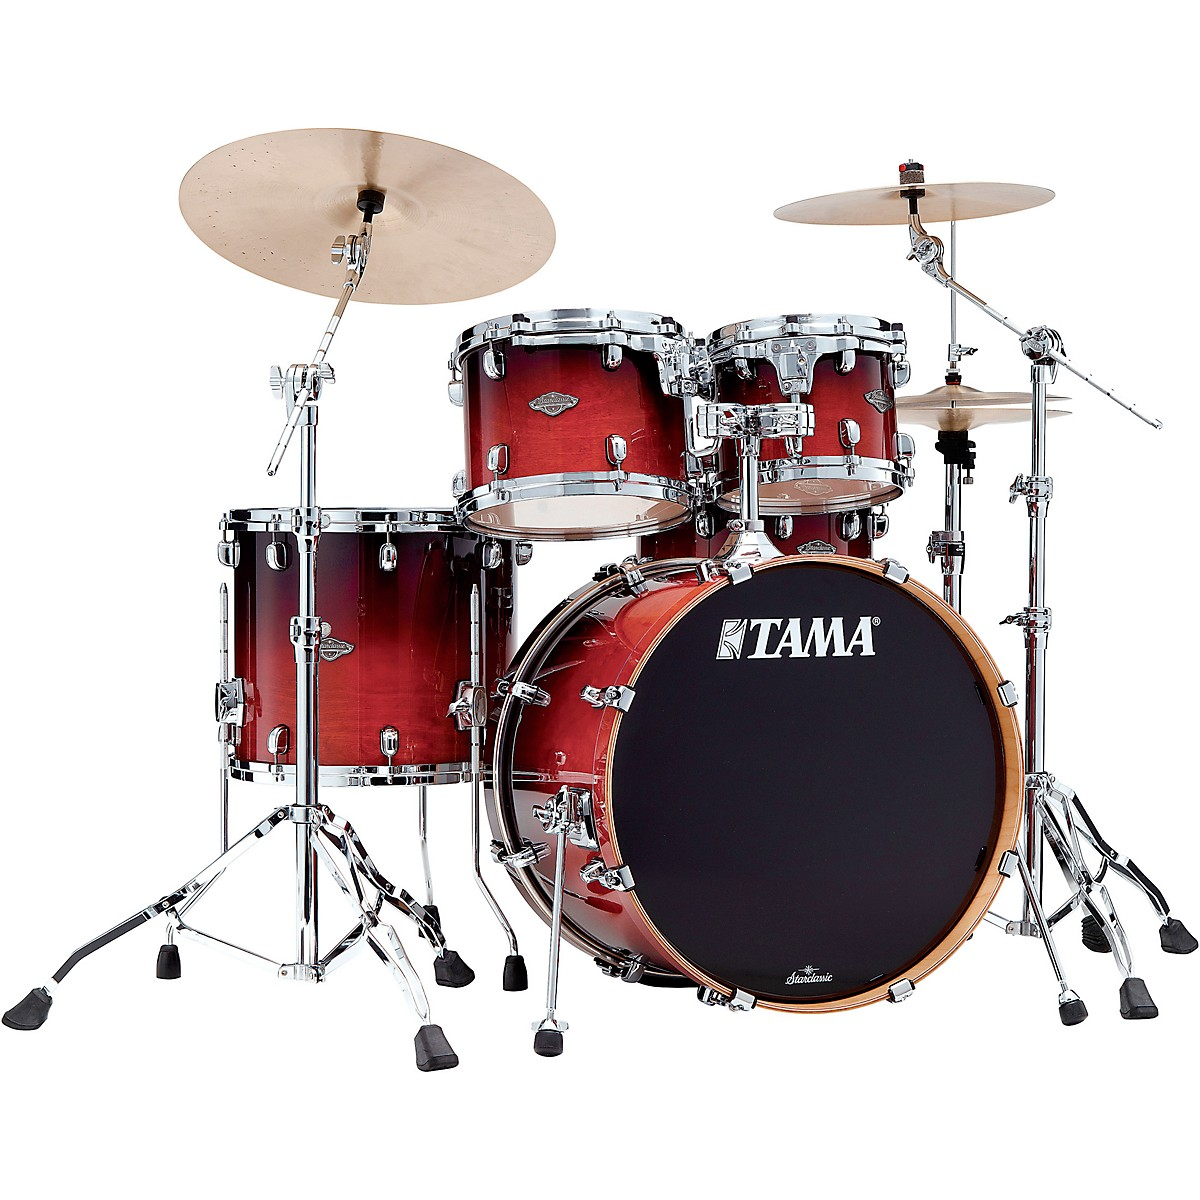 TAMA Starclassic Performer 4-Piece Shell Pack With 22 in. Bass Drum